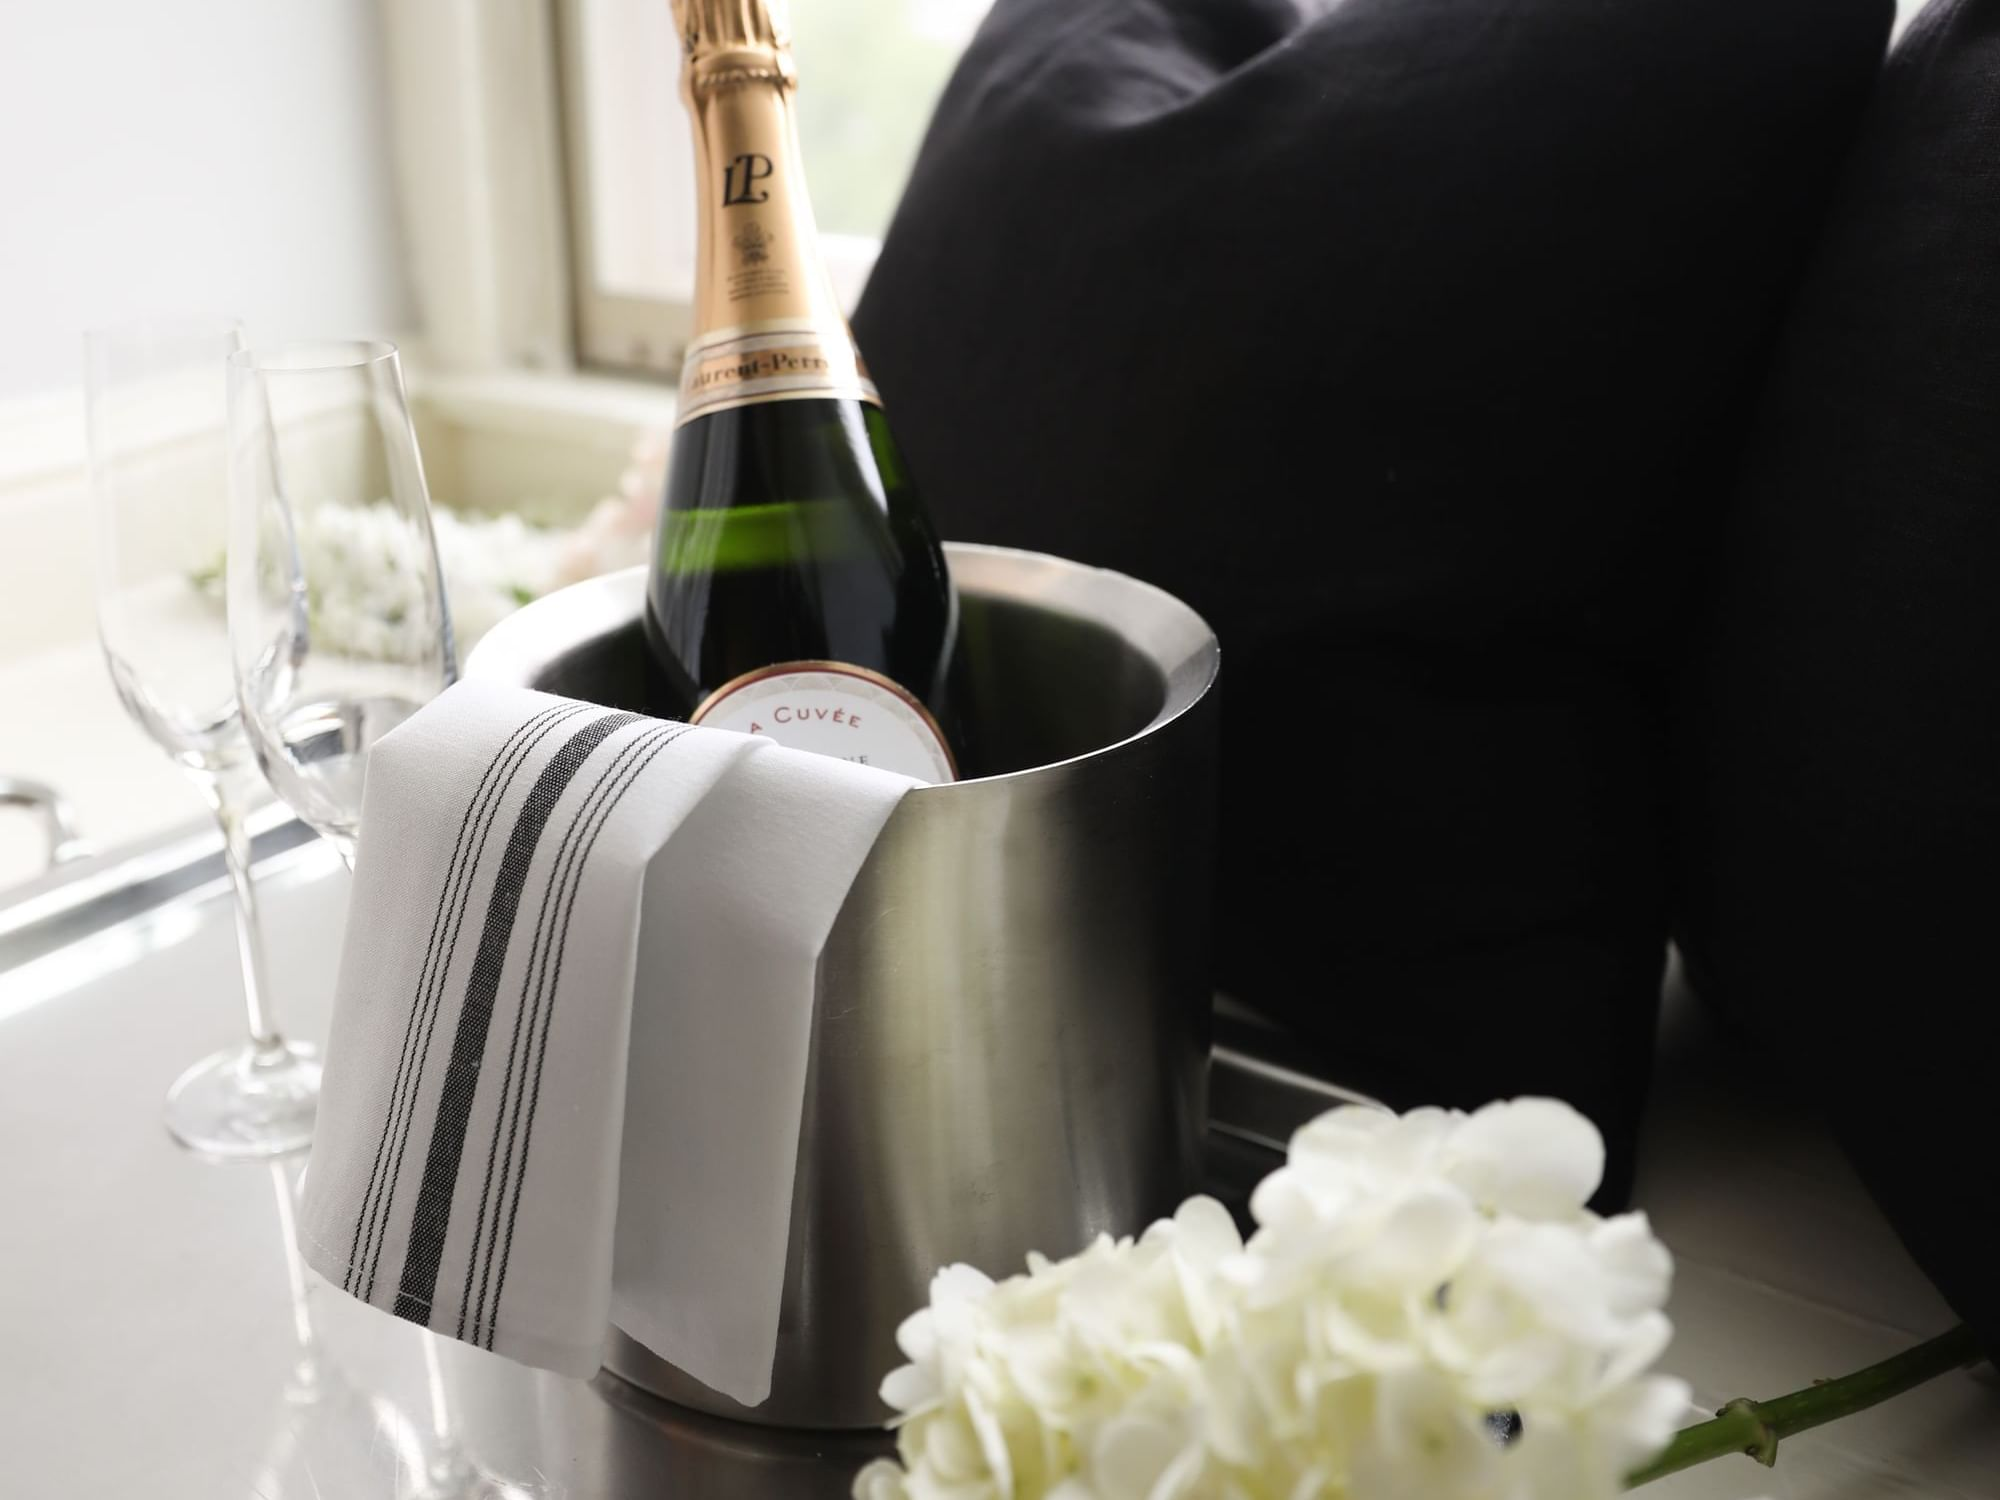 A bottle of champagne in an ice bucket with two glasses and flowers.